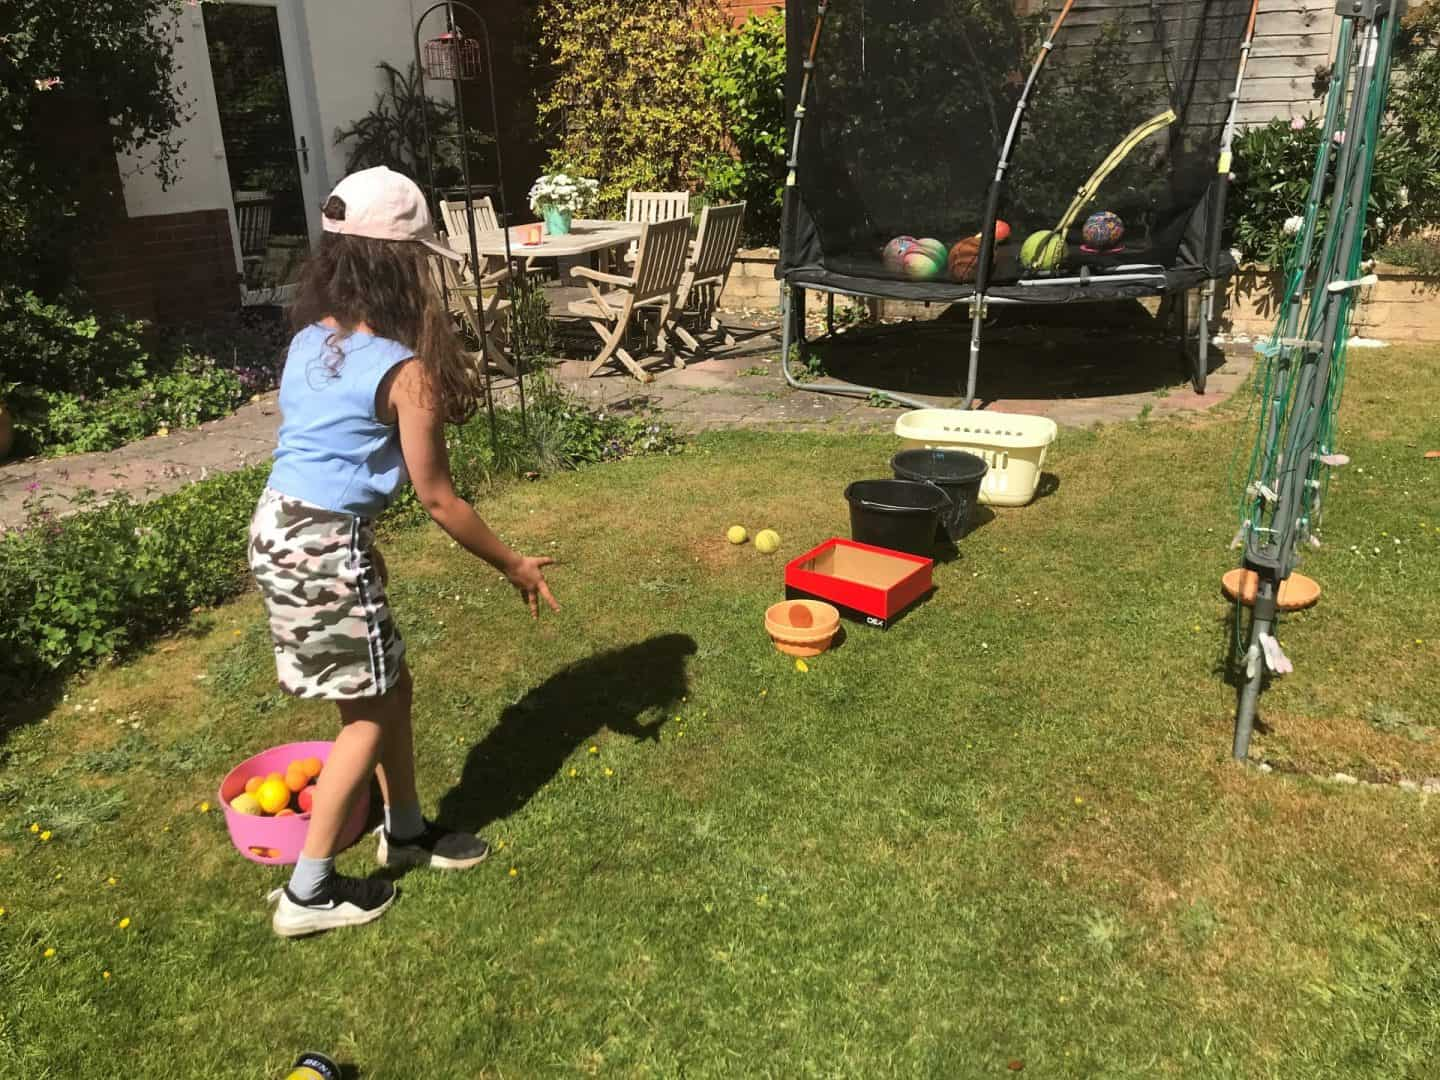 Archery-related games